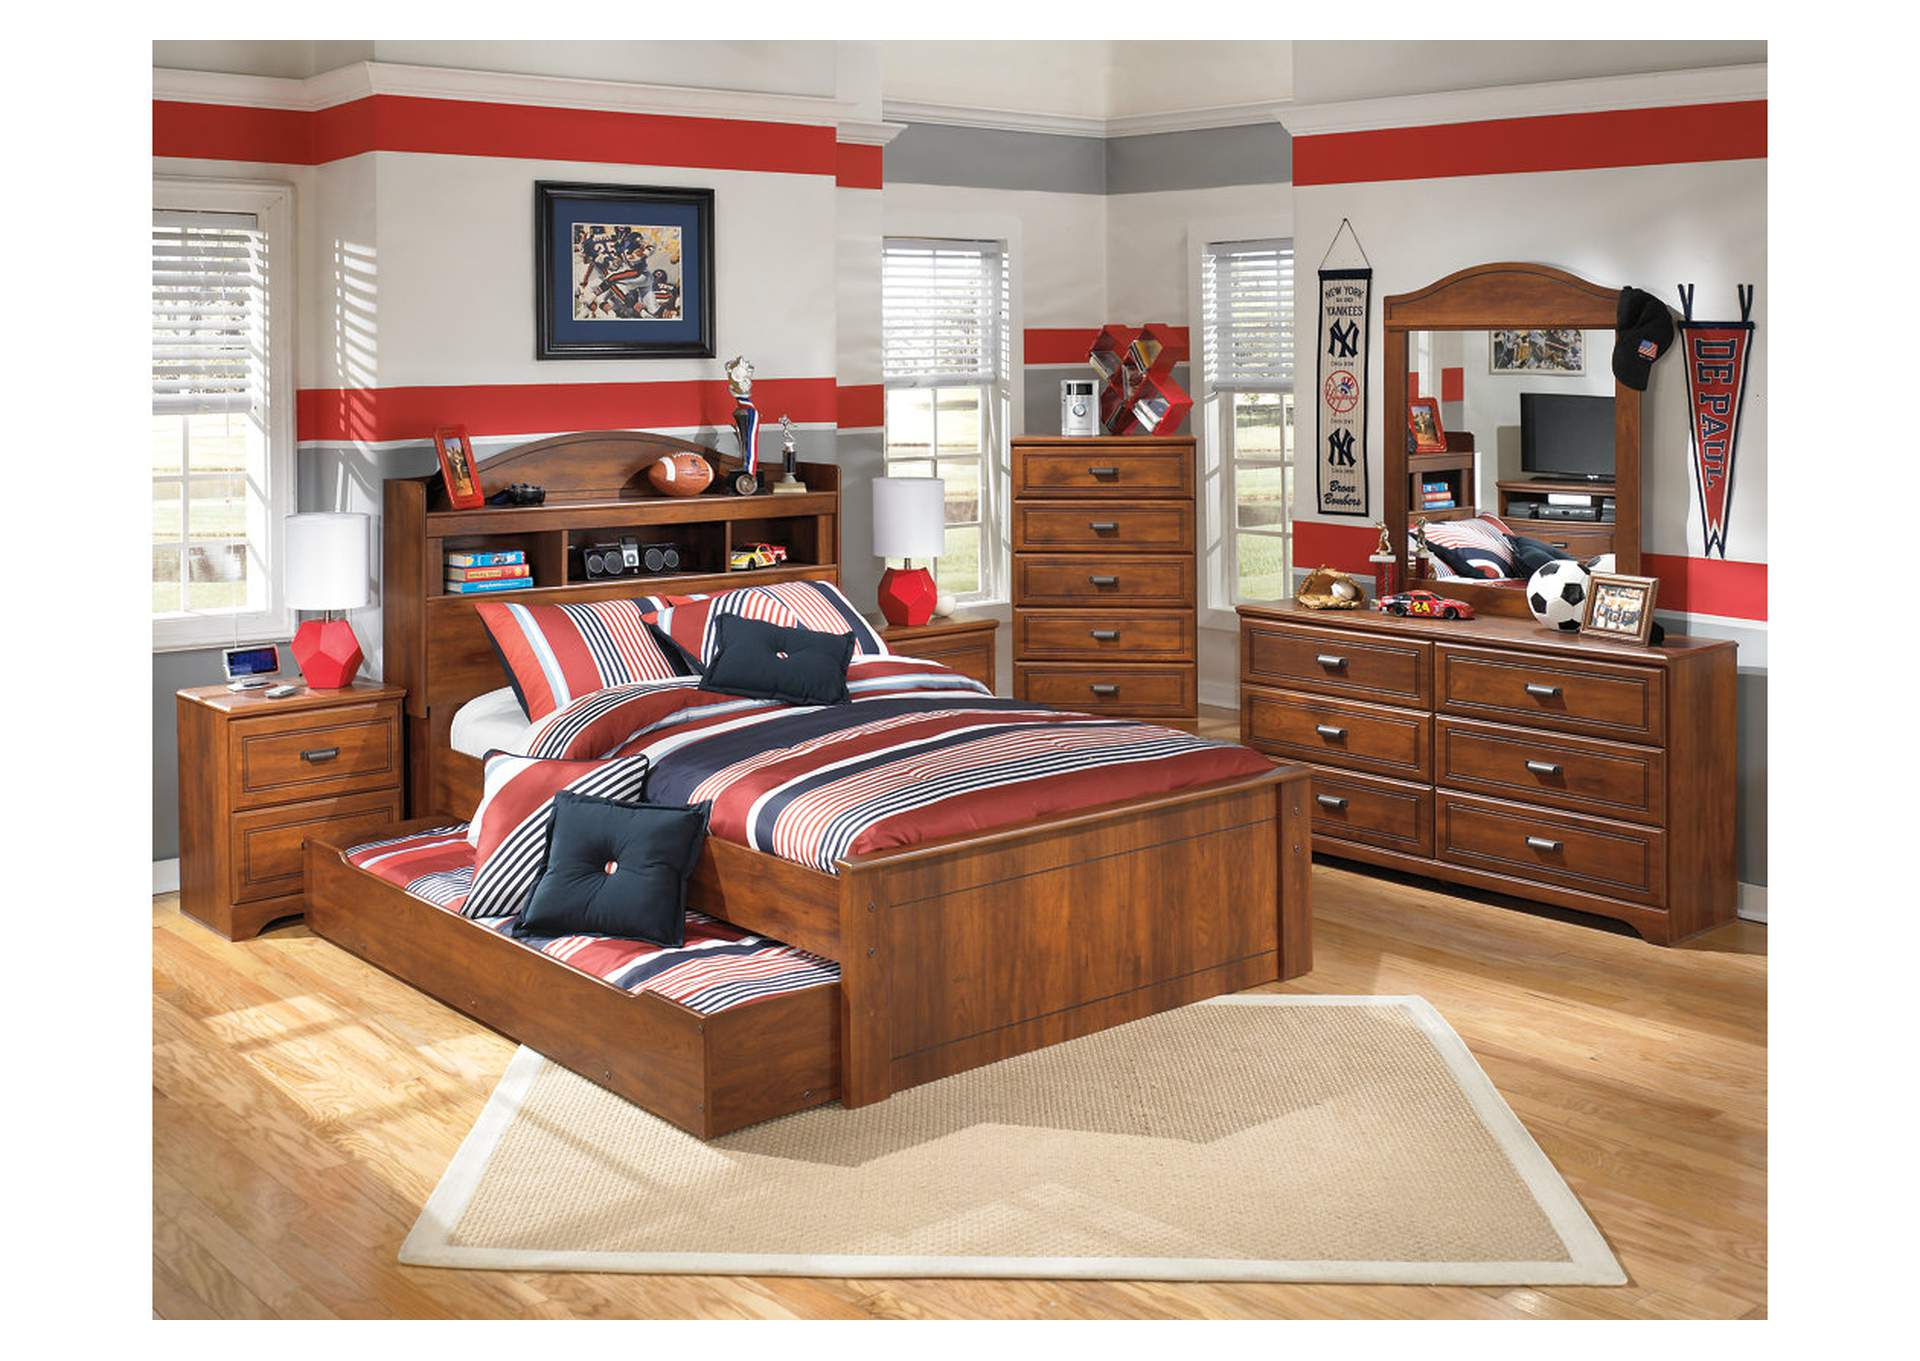 Barchan Full Bookcase Bed w/Trundle, Dresser, Mirror & Drawer Chest,Signature Design By Ashley